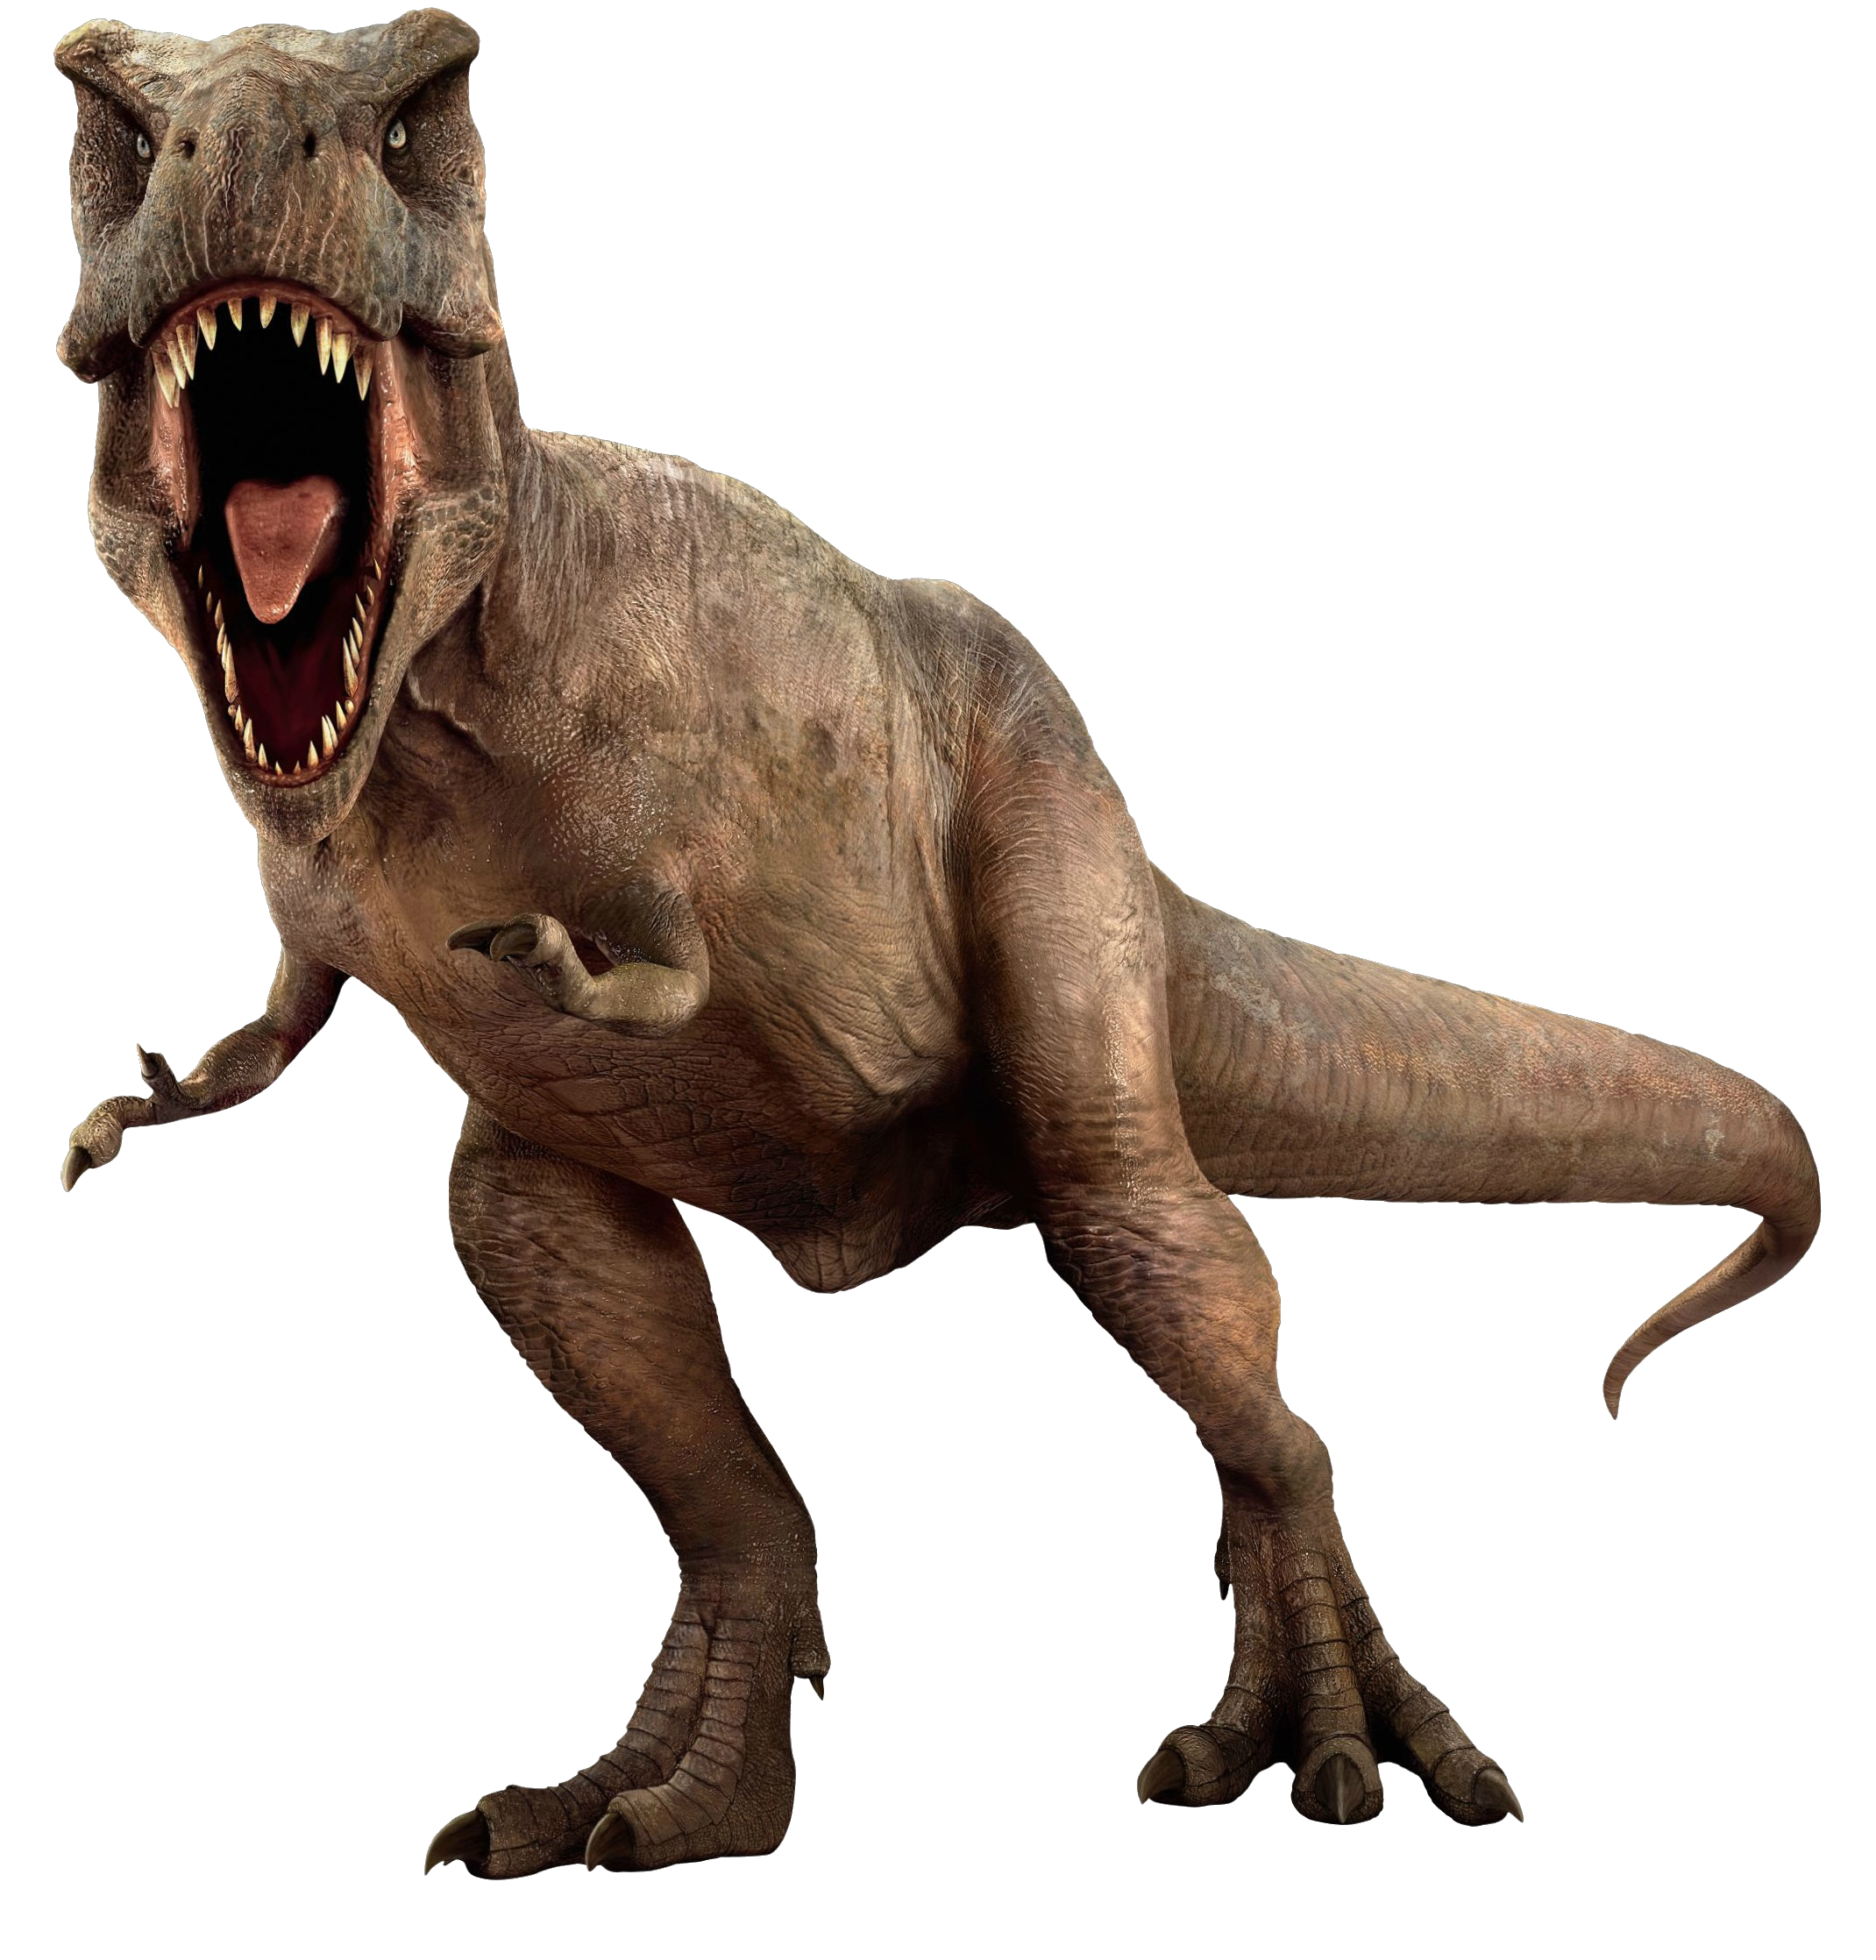 Dinosaur png. Images dino free download